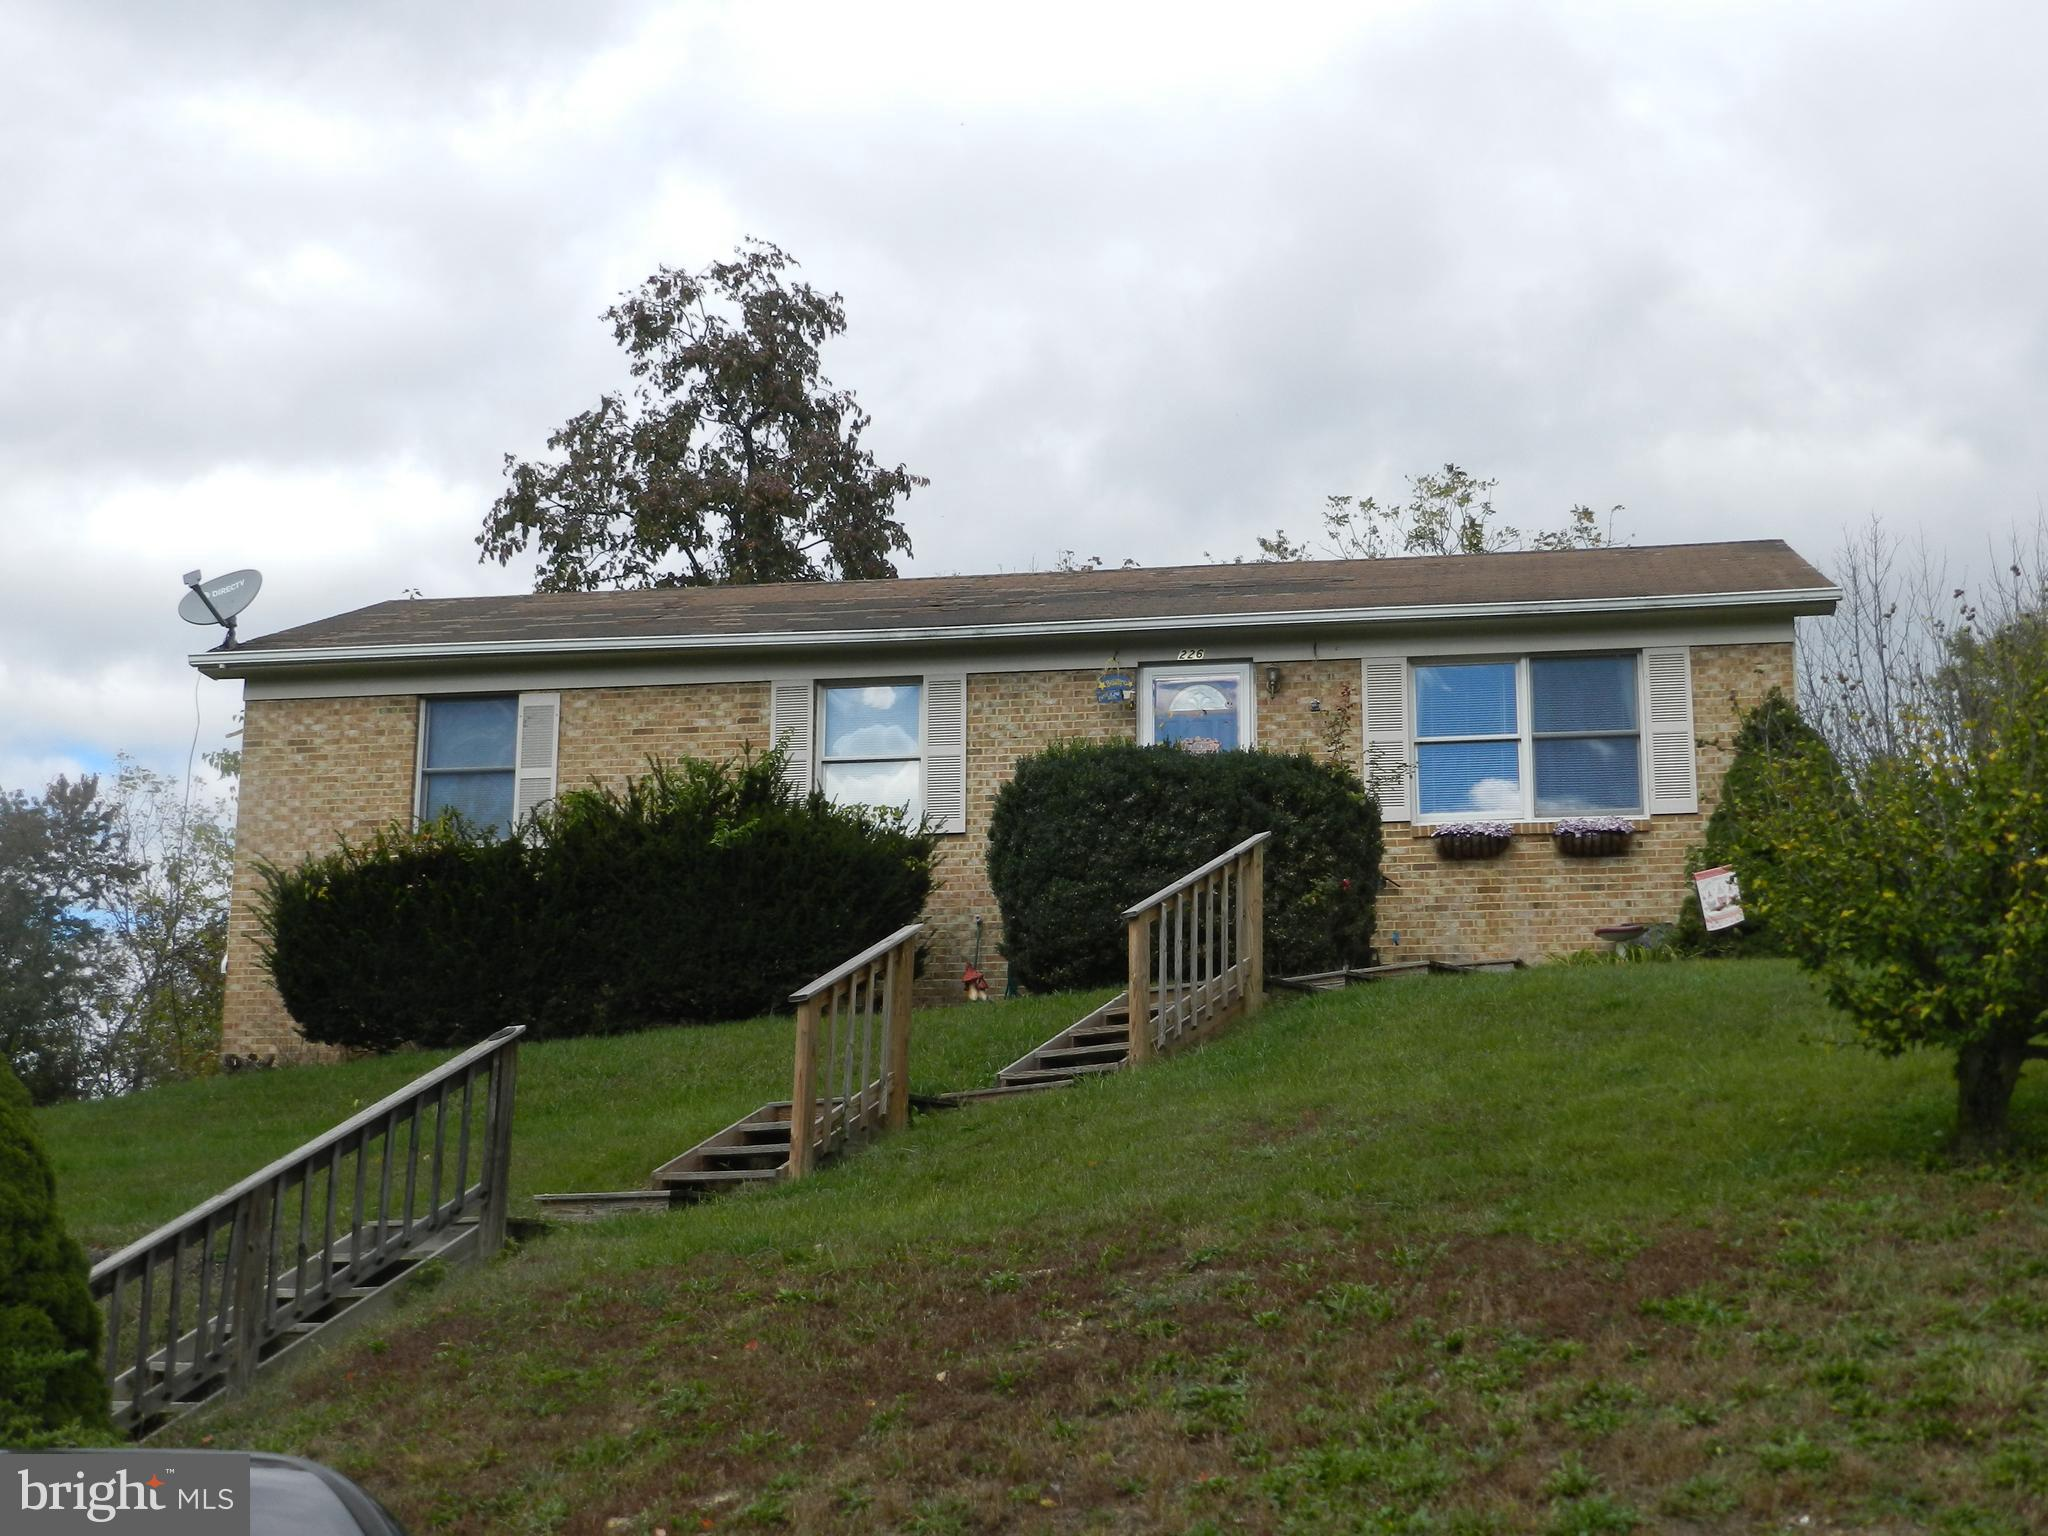 NICE 3 BEROOM  HOME, REMODLED NSIDE,  NICE SIZE LIVING ROOM WITH HARDWOOD FLOORS.  BEAUTIFULLY REMOD